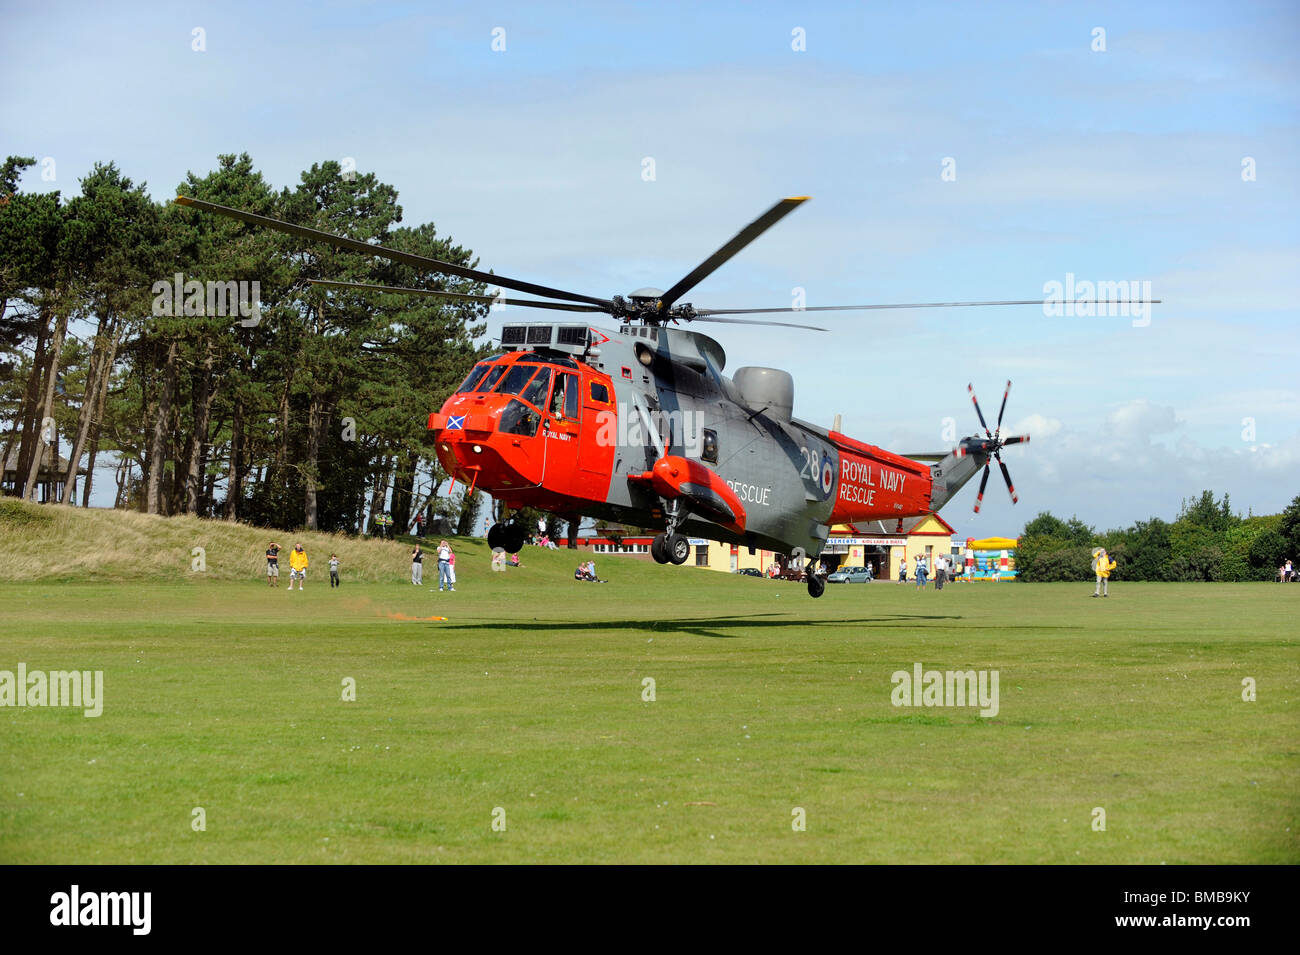 how to join the royal navy search and rescue